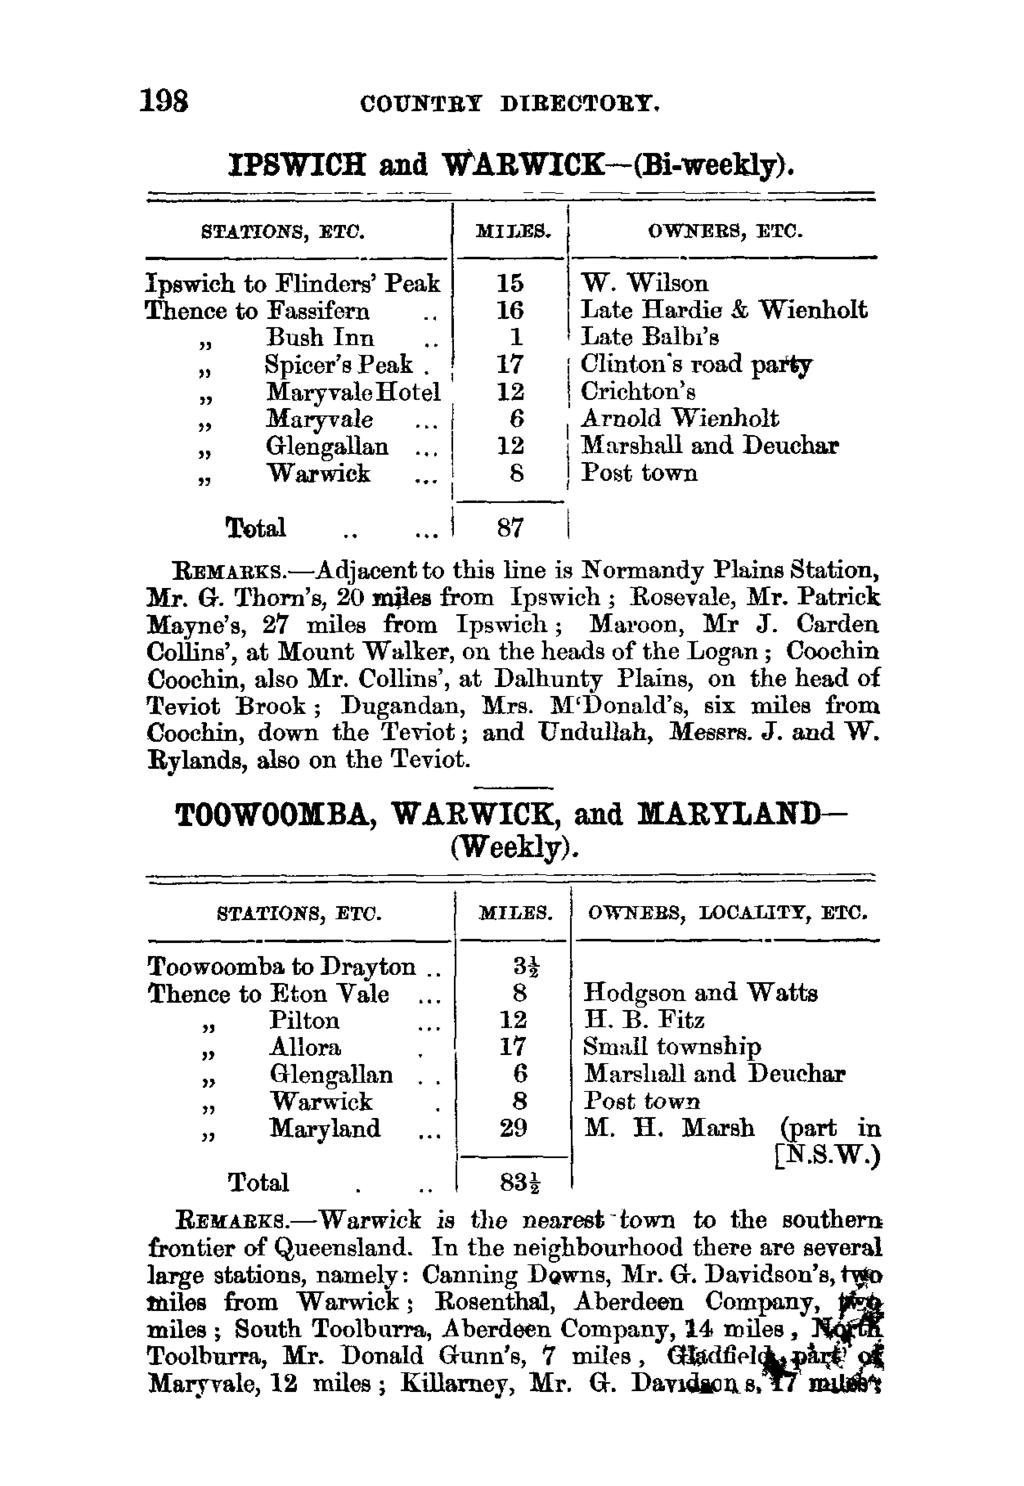 198 COUNTRY DIRECTORY, IPSWICH and WARWICK-(Bi-weekly). STATIONS, ETC. MILES.! OWNERS, ETC. Ipswich to Flinders' Peak Thence to Fassifern Bush Inn Spicer's Peak Maryvalellotel Maryvale Glengallan.